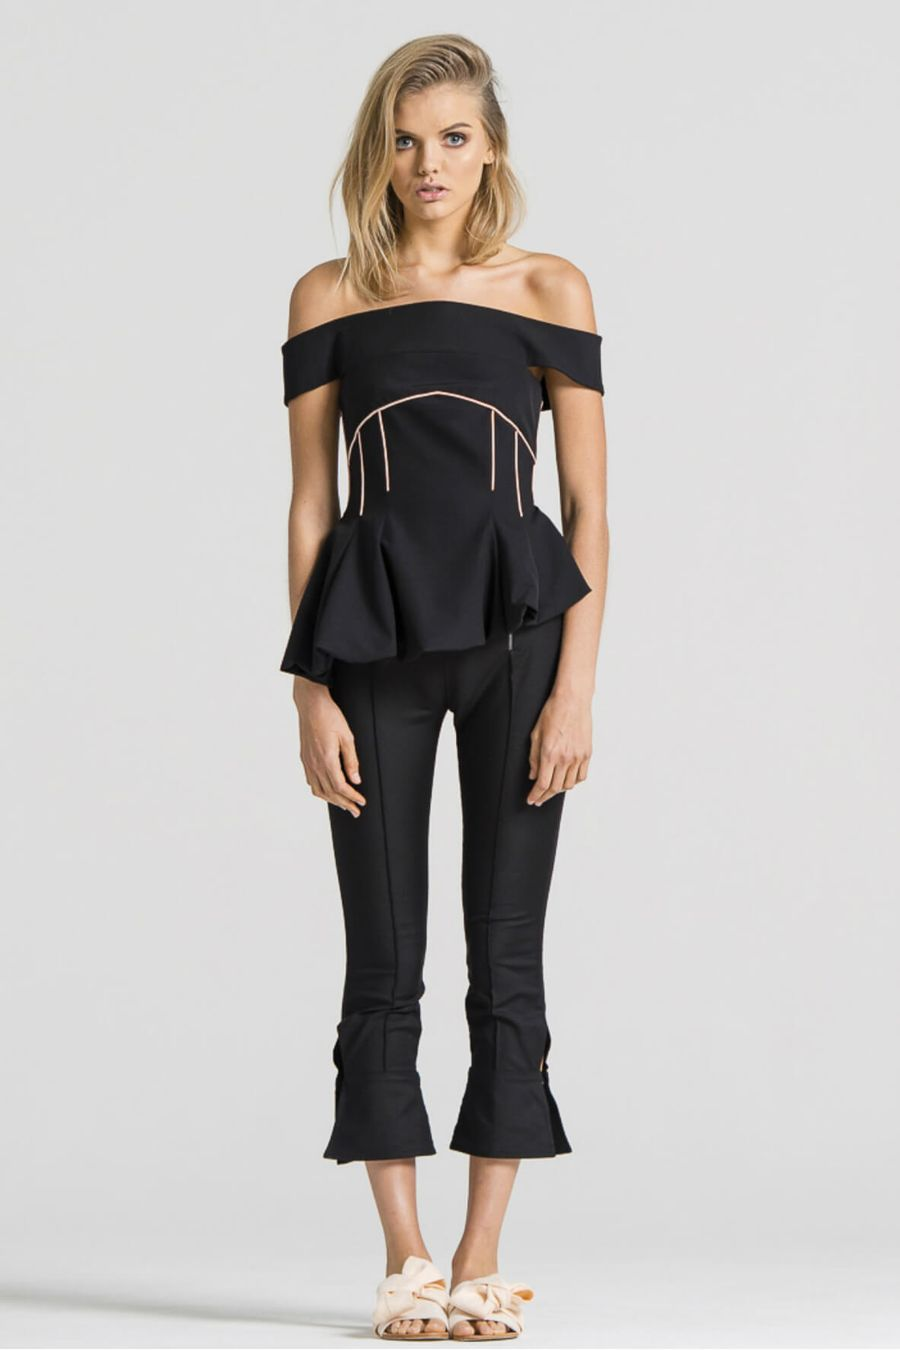 Style Theory_lucid-label-piped-balloon-hem-top-2